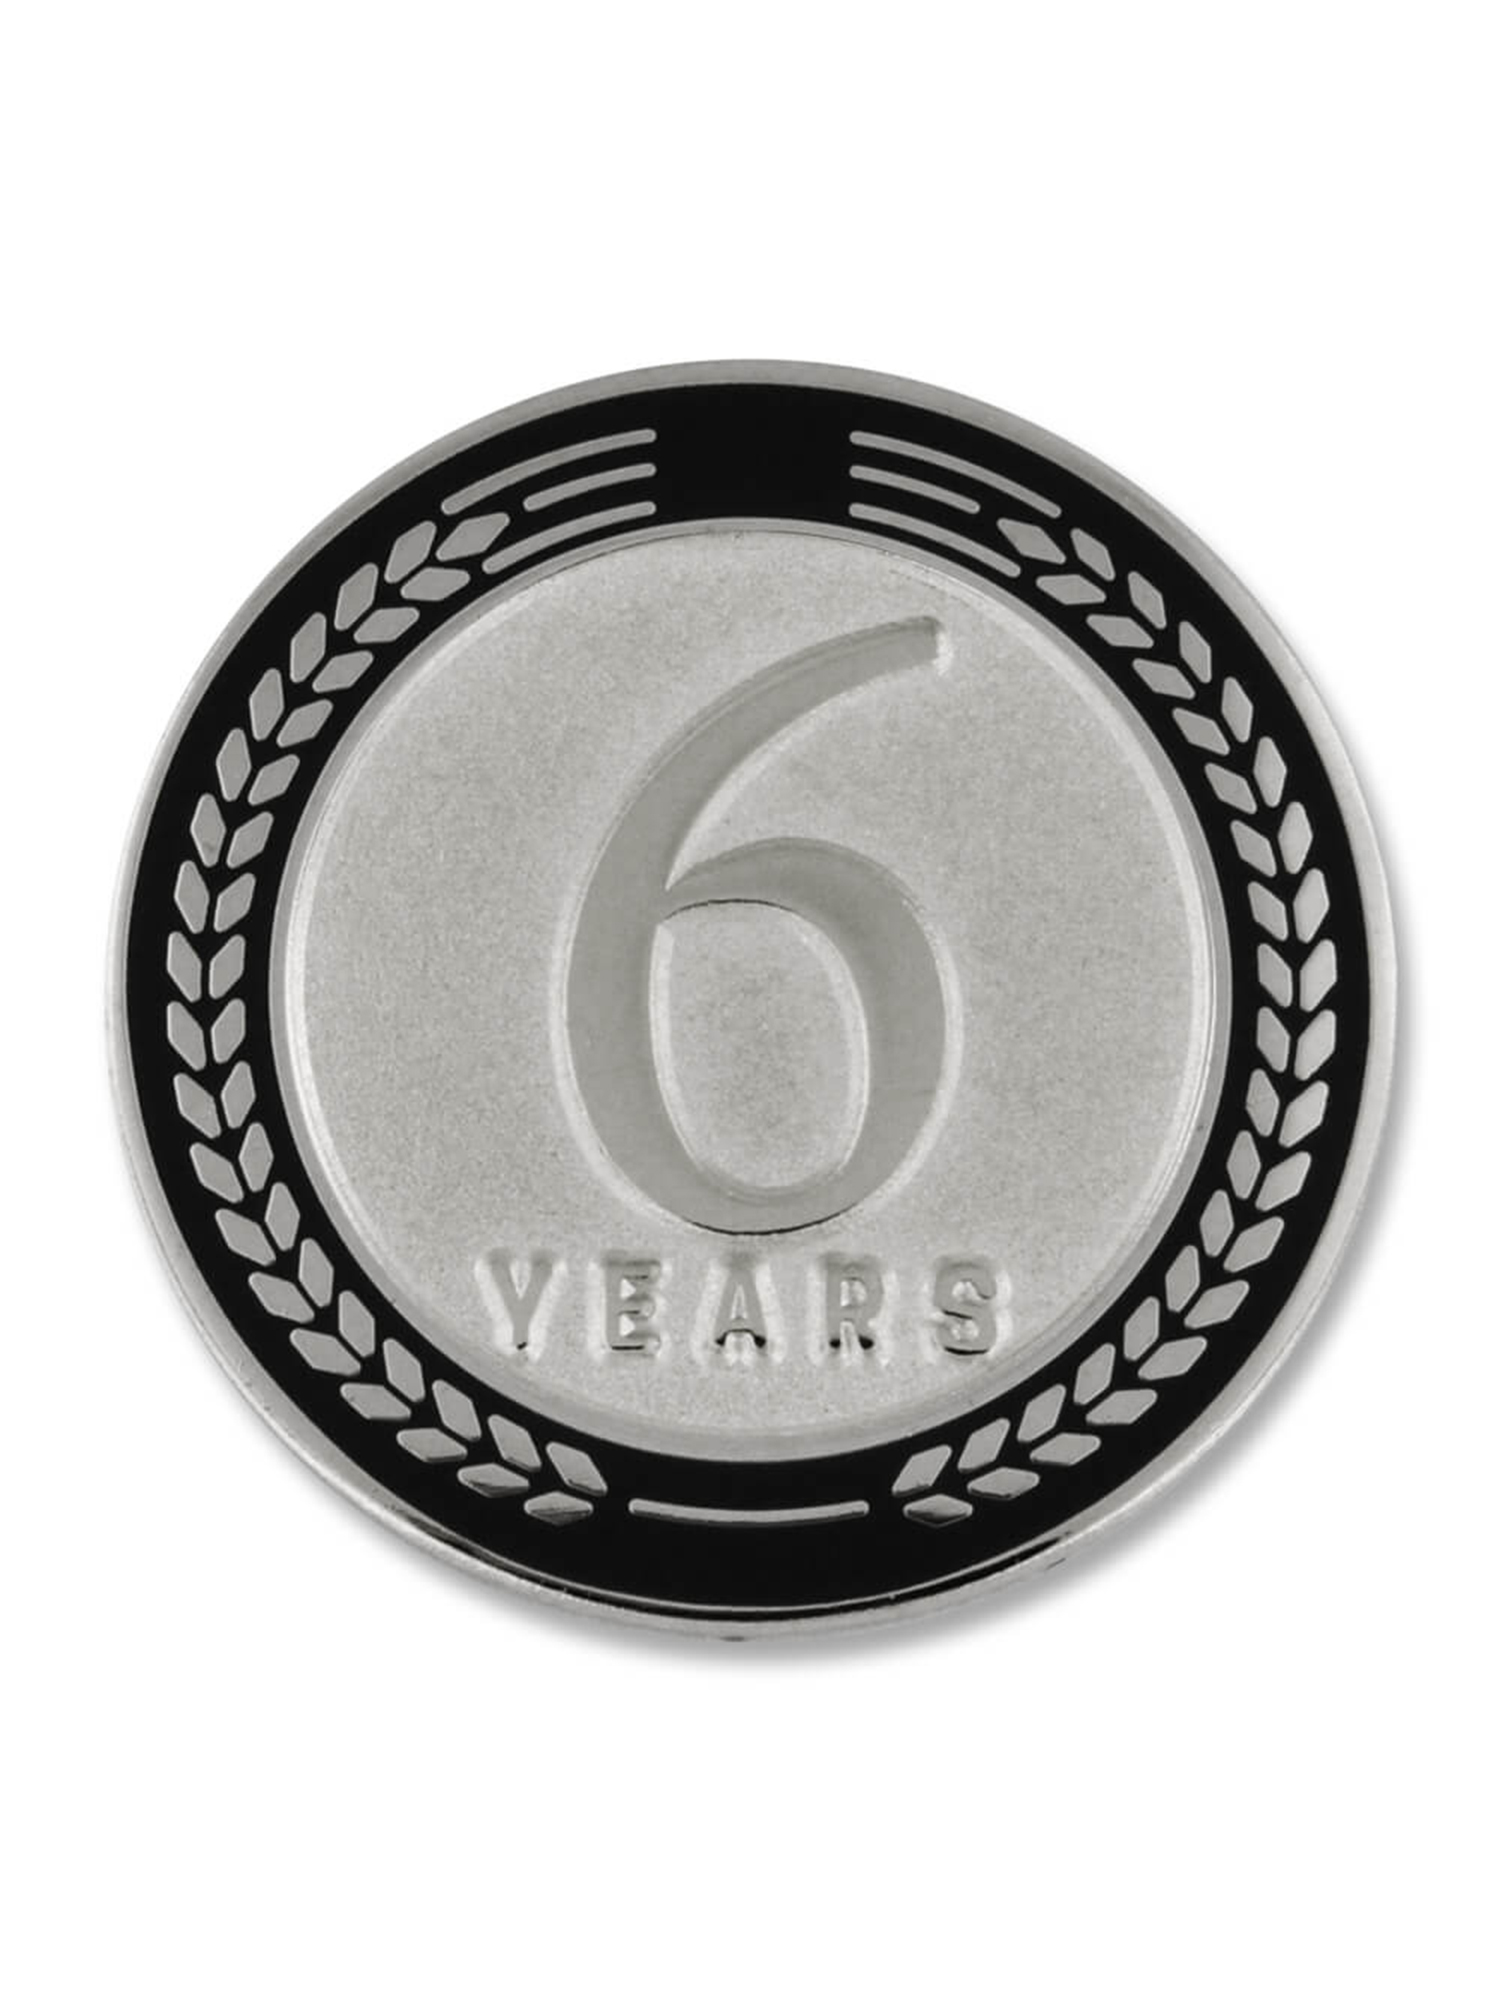 PinMart 33 Years of Service Award Employee Recognition Gift Lapel Pin Black